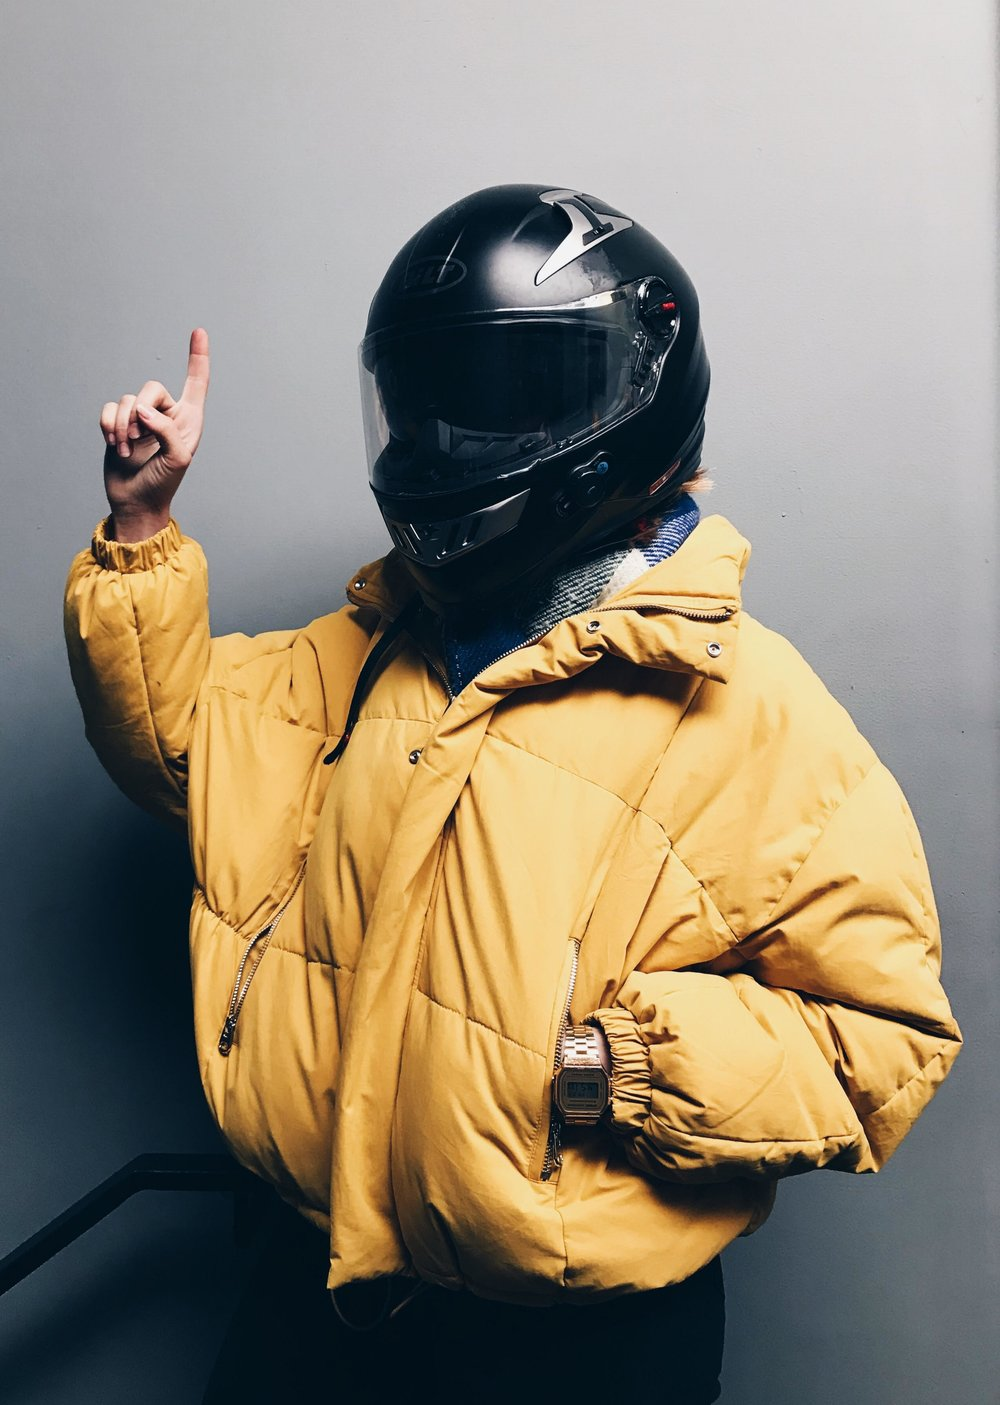 this is me - This is mostly how I look like on not so warm but sunny days. Being one with one of my screaming jackets and my helmet, hopping-off of my Honda Rebel 250. Just another day keeping my aesthetic bold and wild. Essentials are essentials. Let's get into detail...